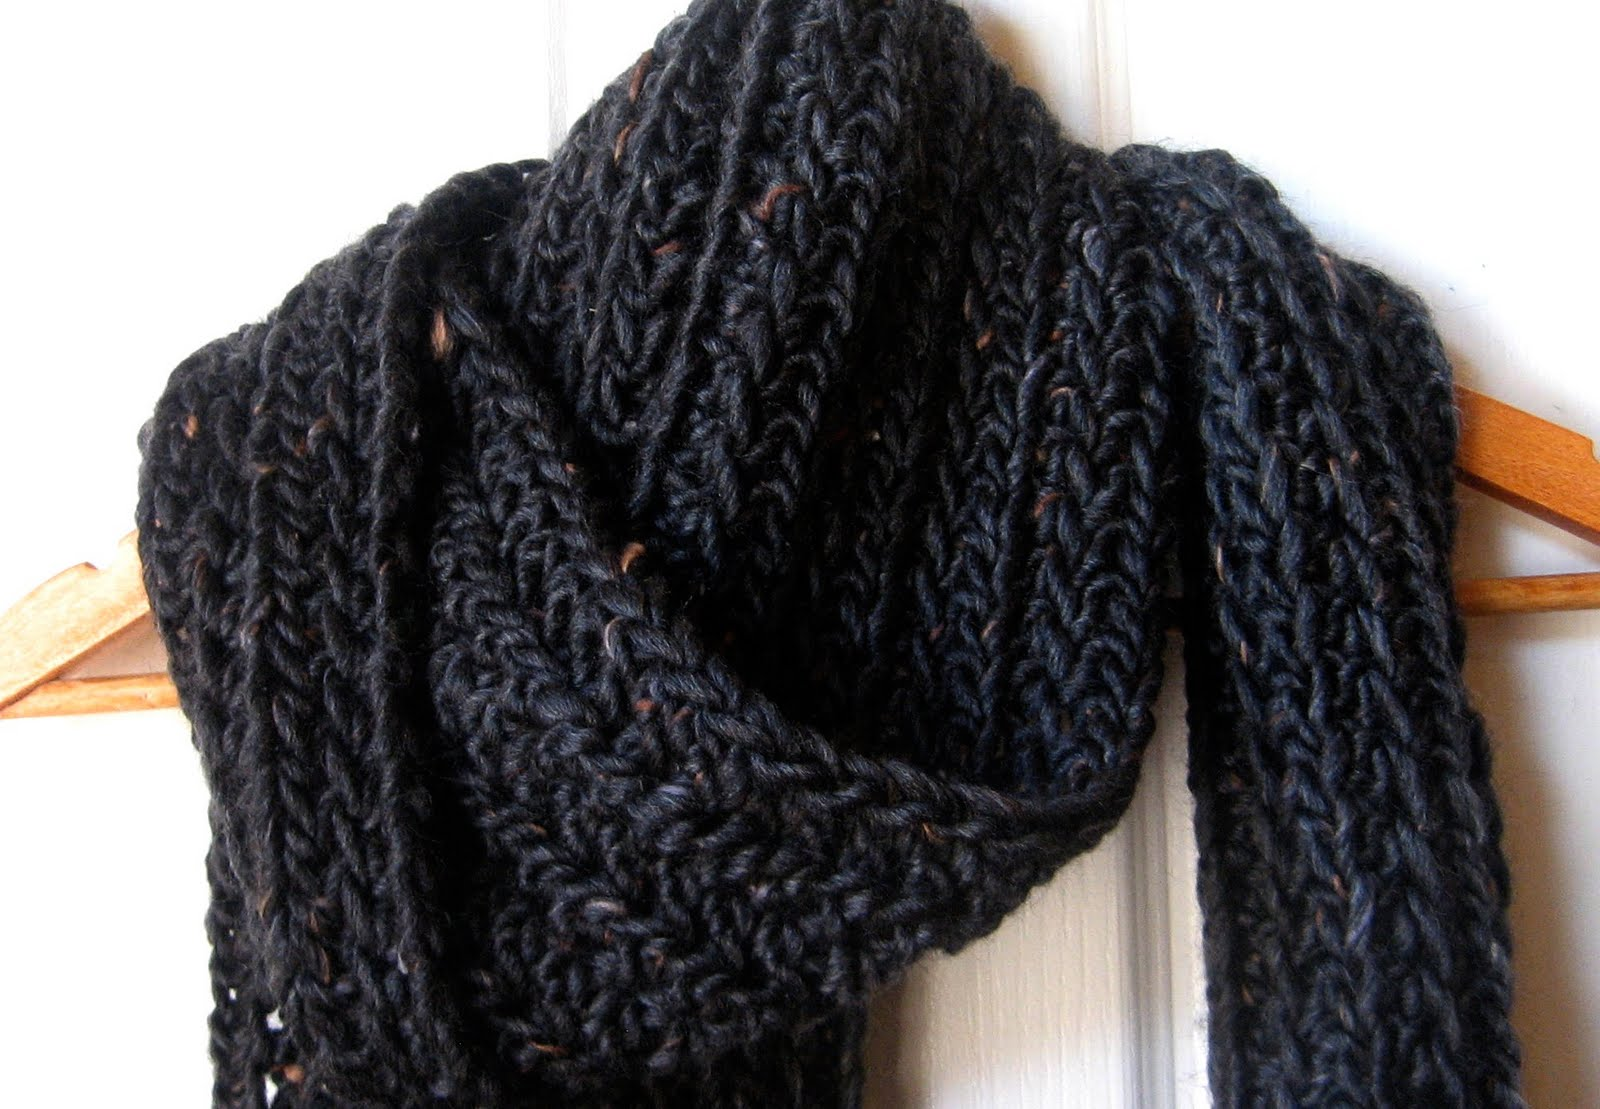 Crochet Scarf Pattern Male : Alfa img - Showing > Mens Crochet Scarf